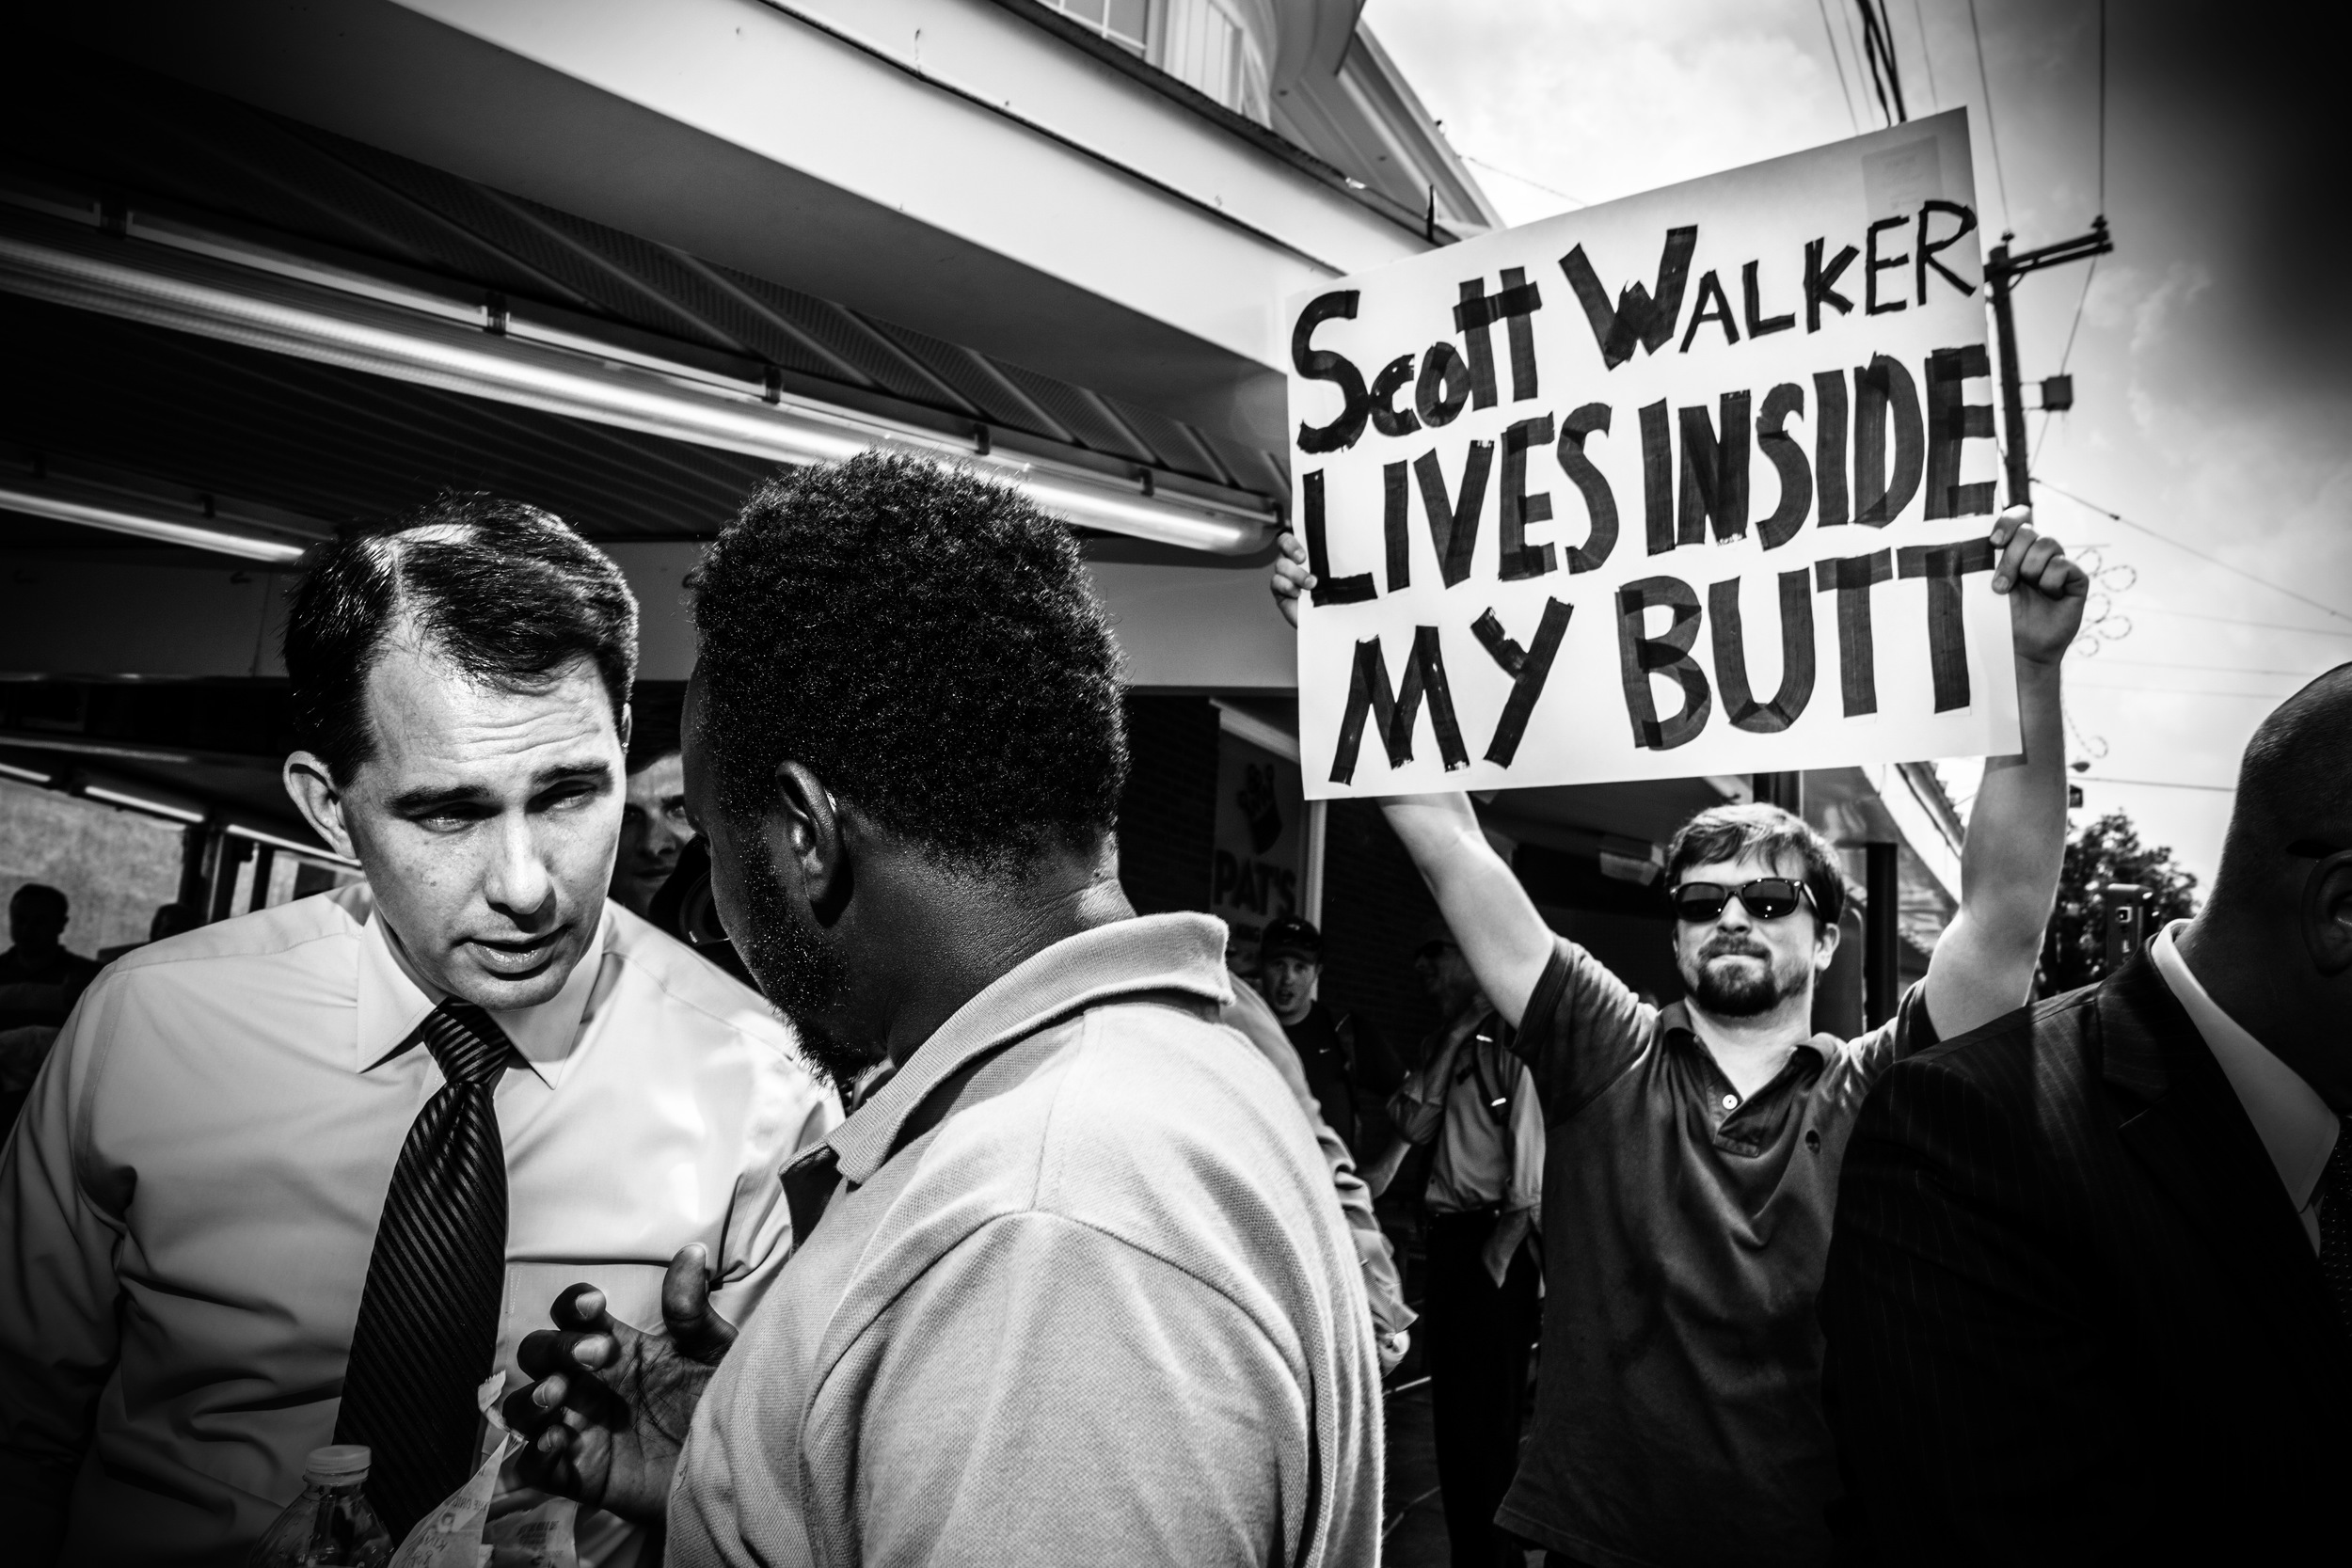 Scott Walker on the campaign trail in Philadelphia. © Mark Peterson/ ReduxPictures